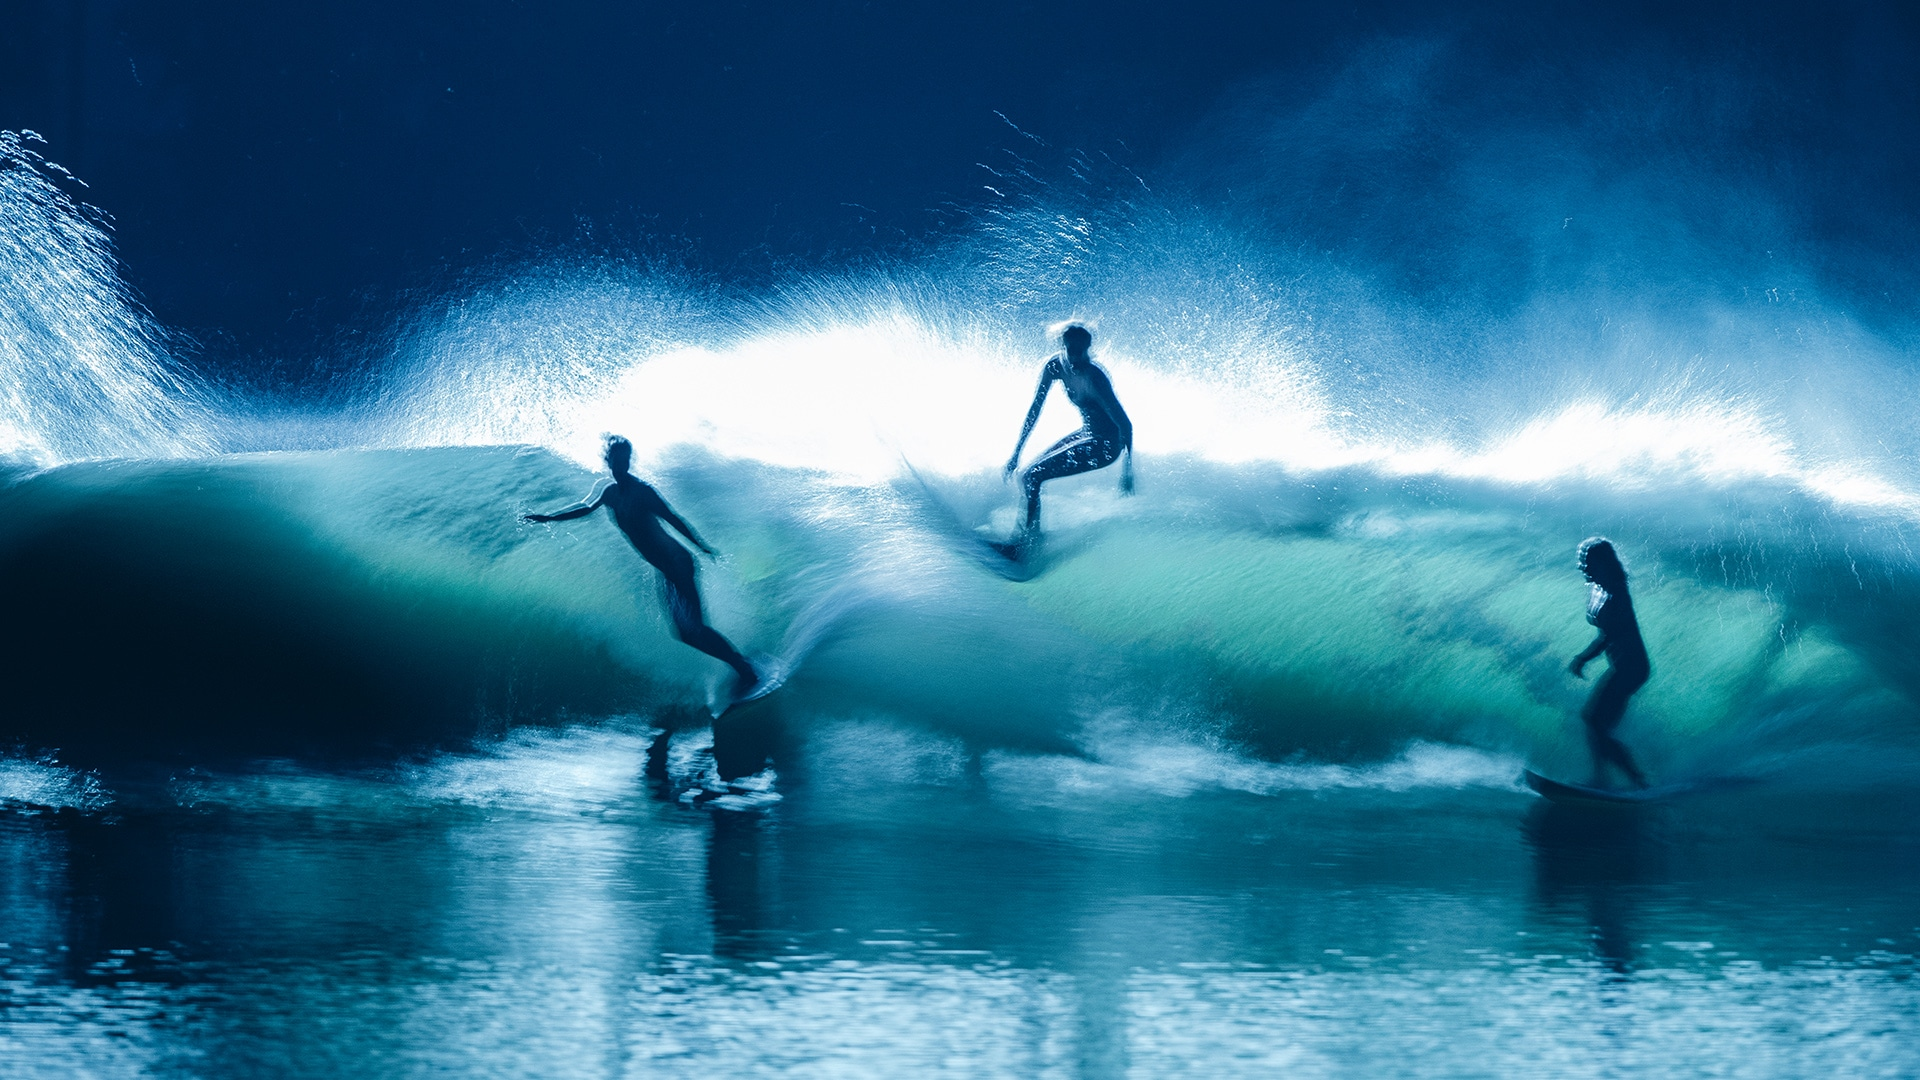 Three surfers in action.